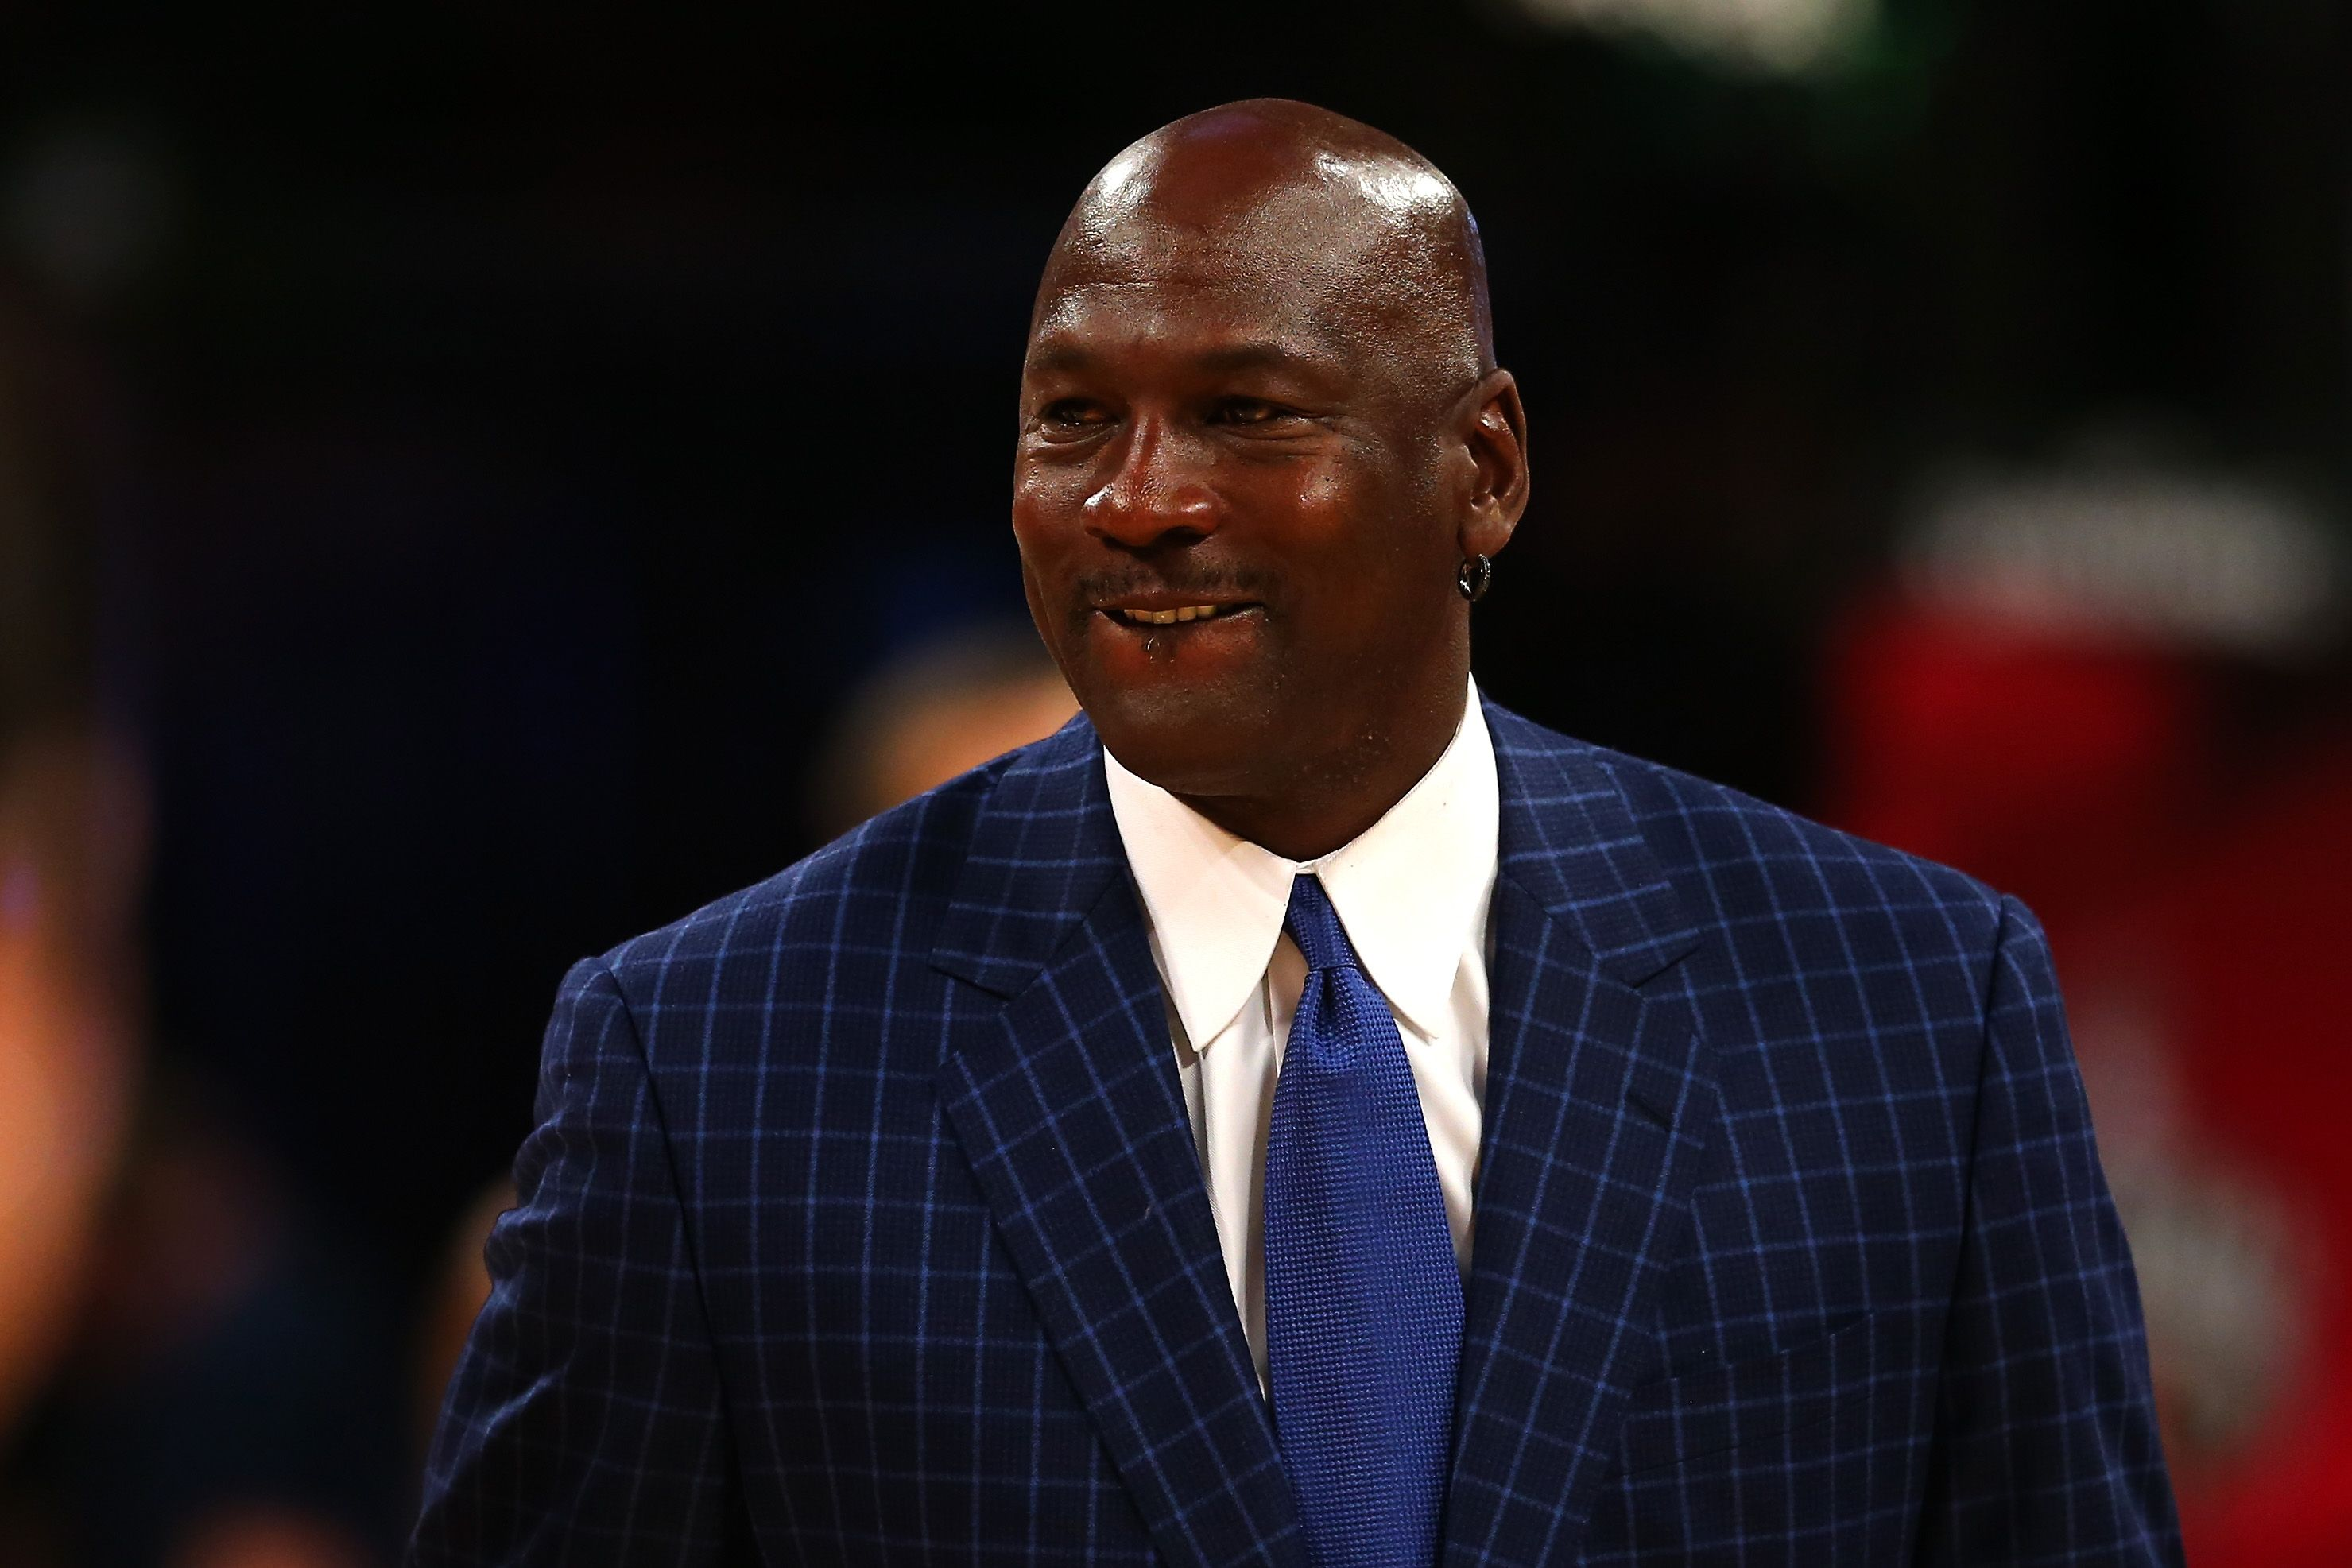 Michael Jordan walks off the court during the NBA All-Star Game 2016 at the Air Canada Centre on February 14, 2016   Photo: Getty Images